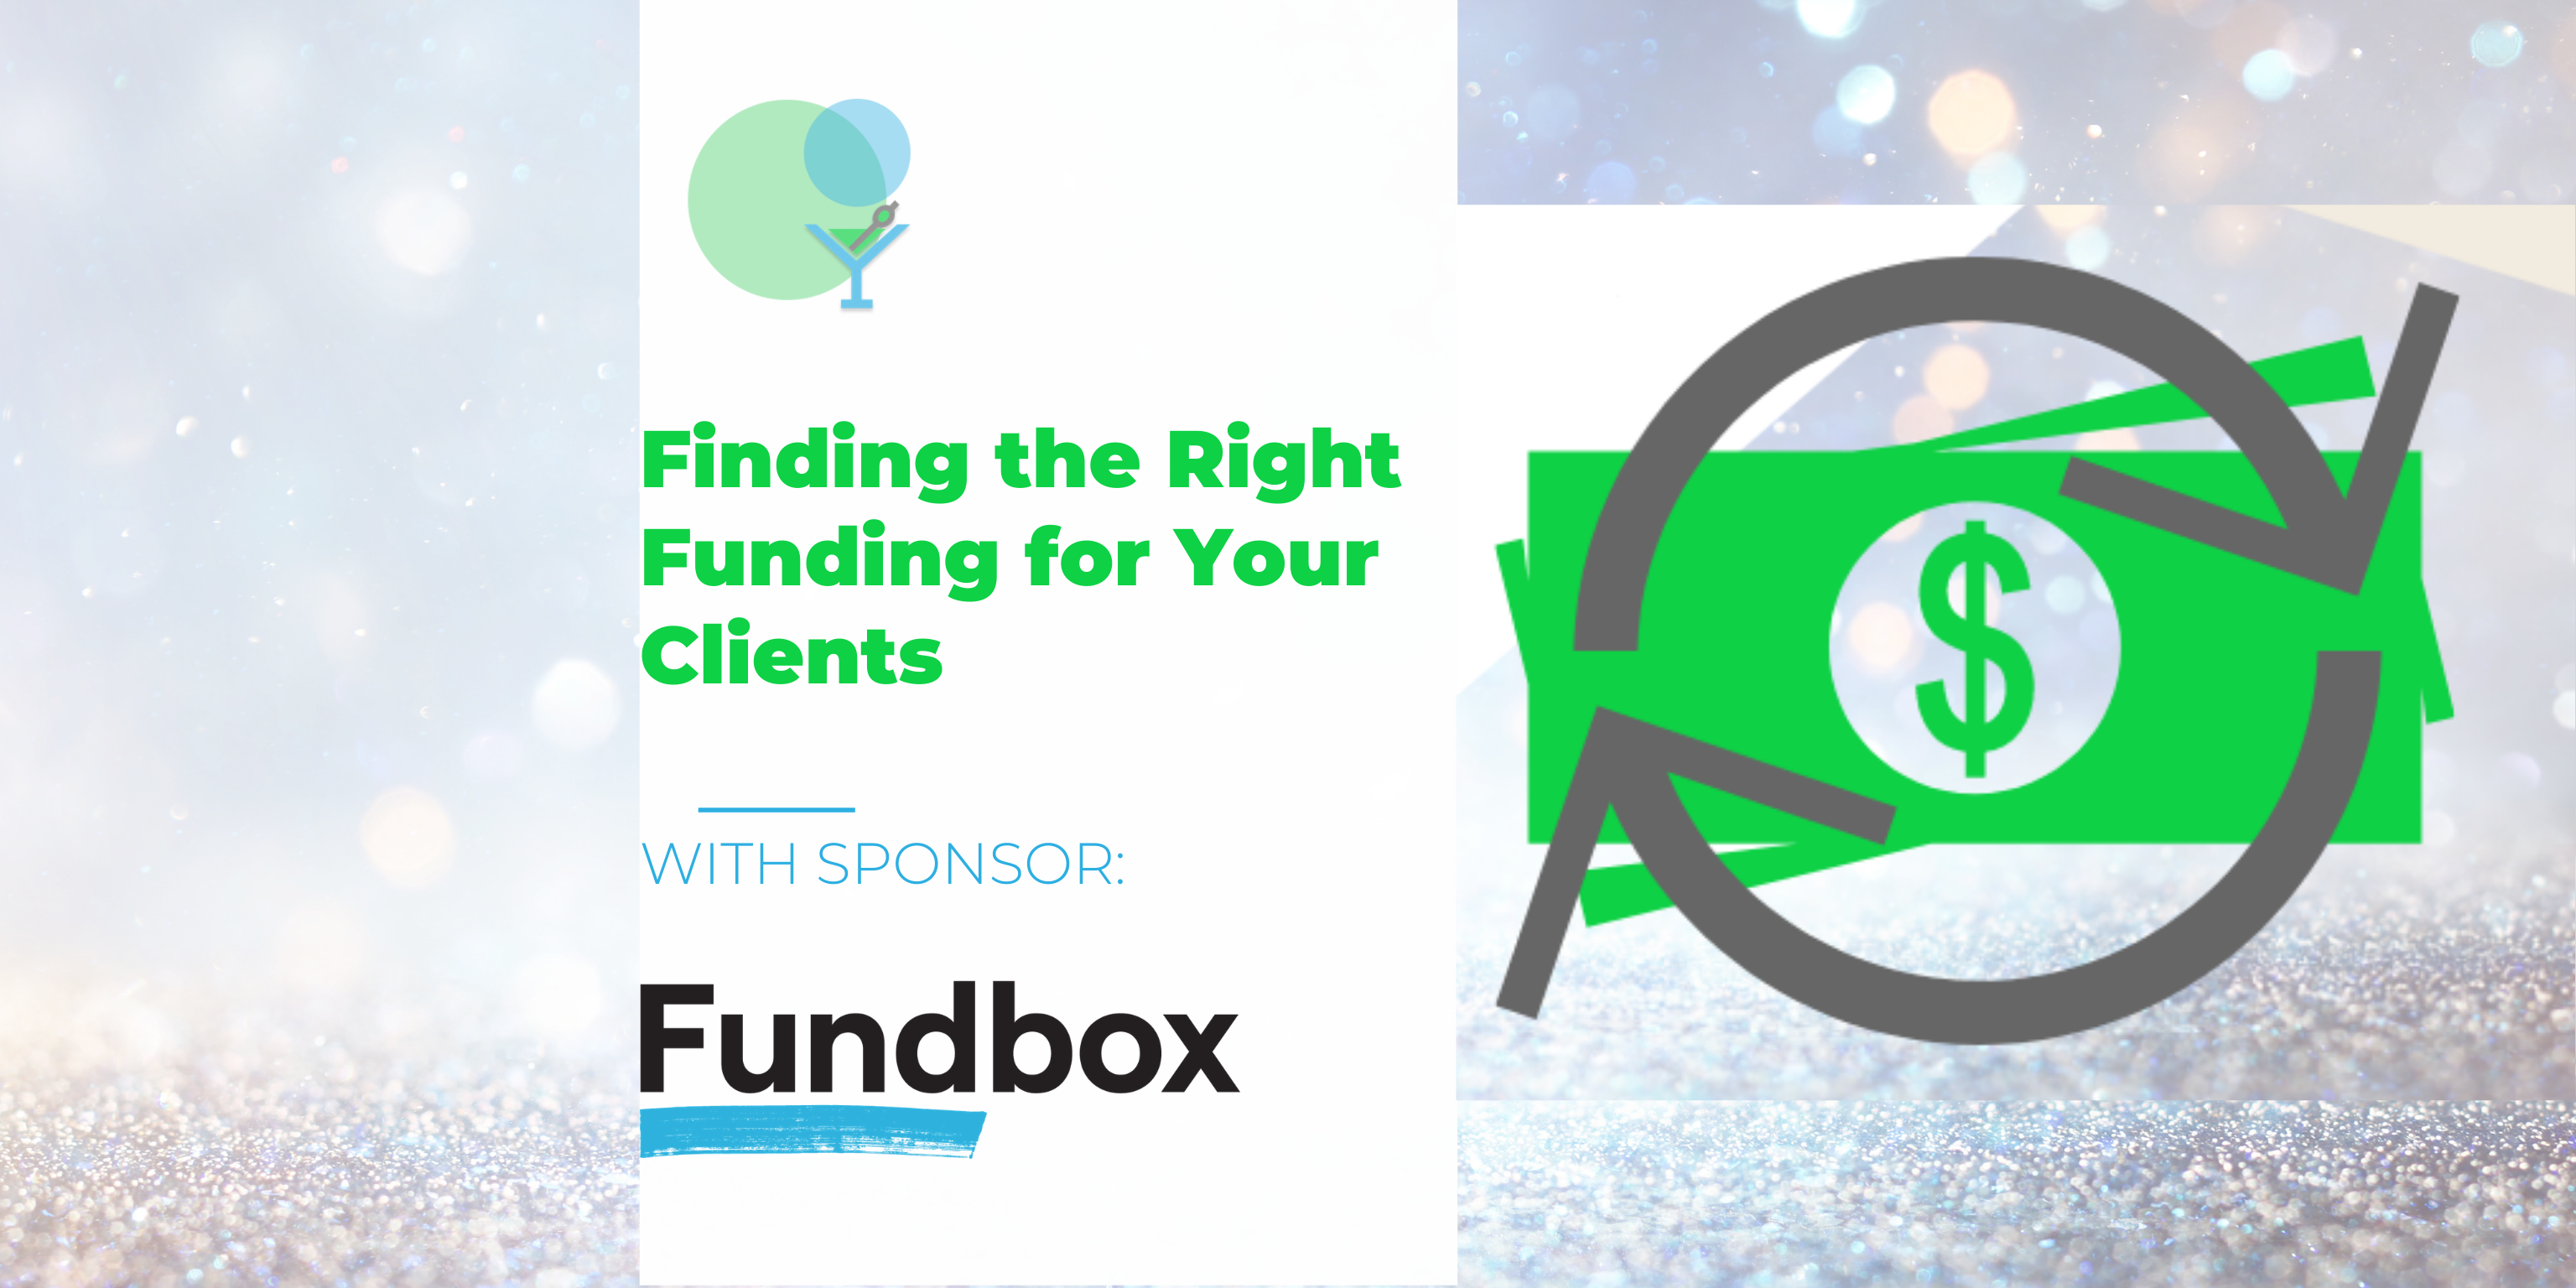 Finding the Right Funding for your Clients with Fundbox